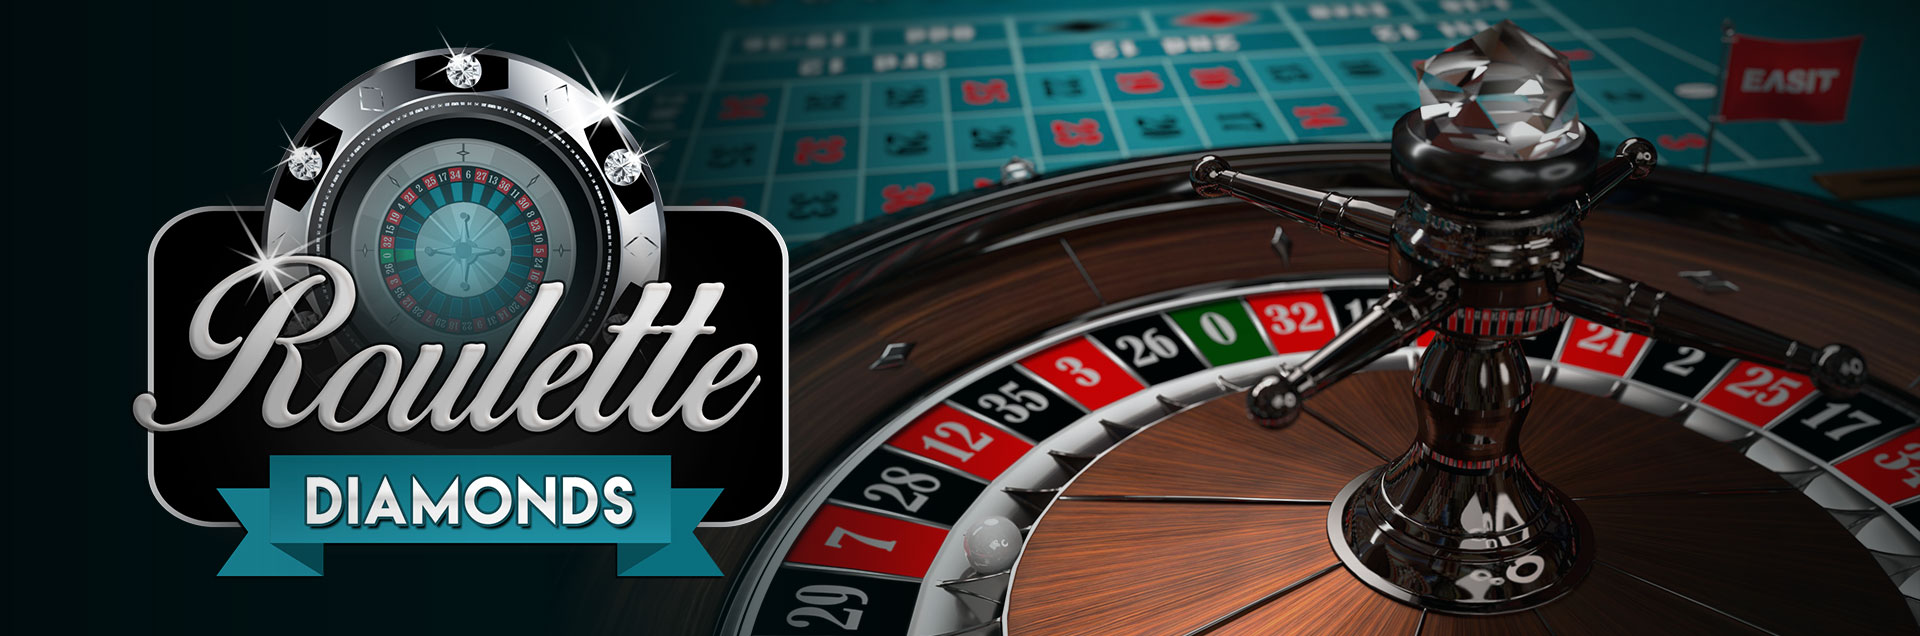 Roulette Diamonds logo